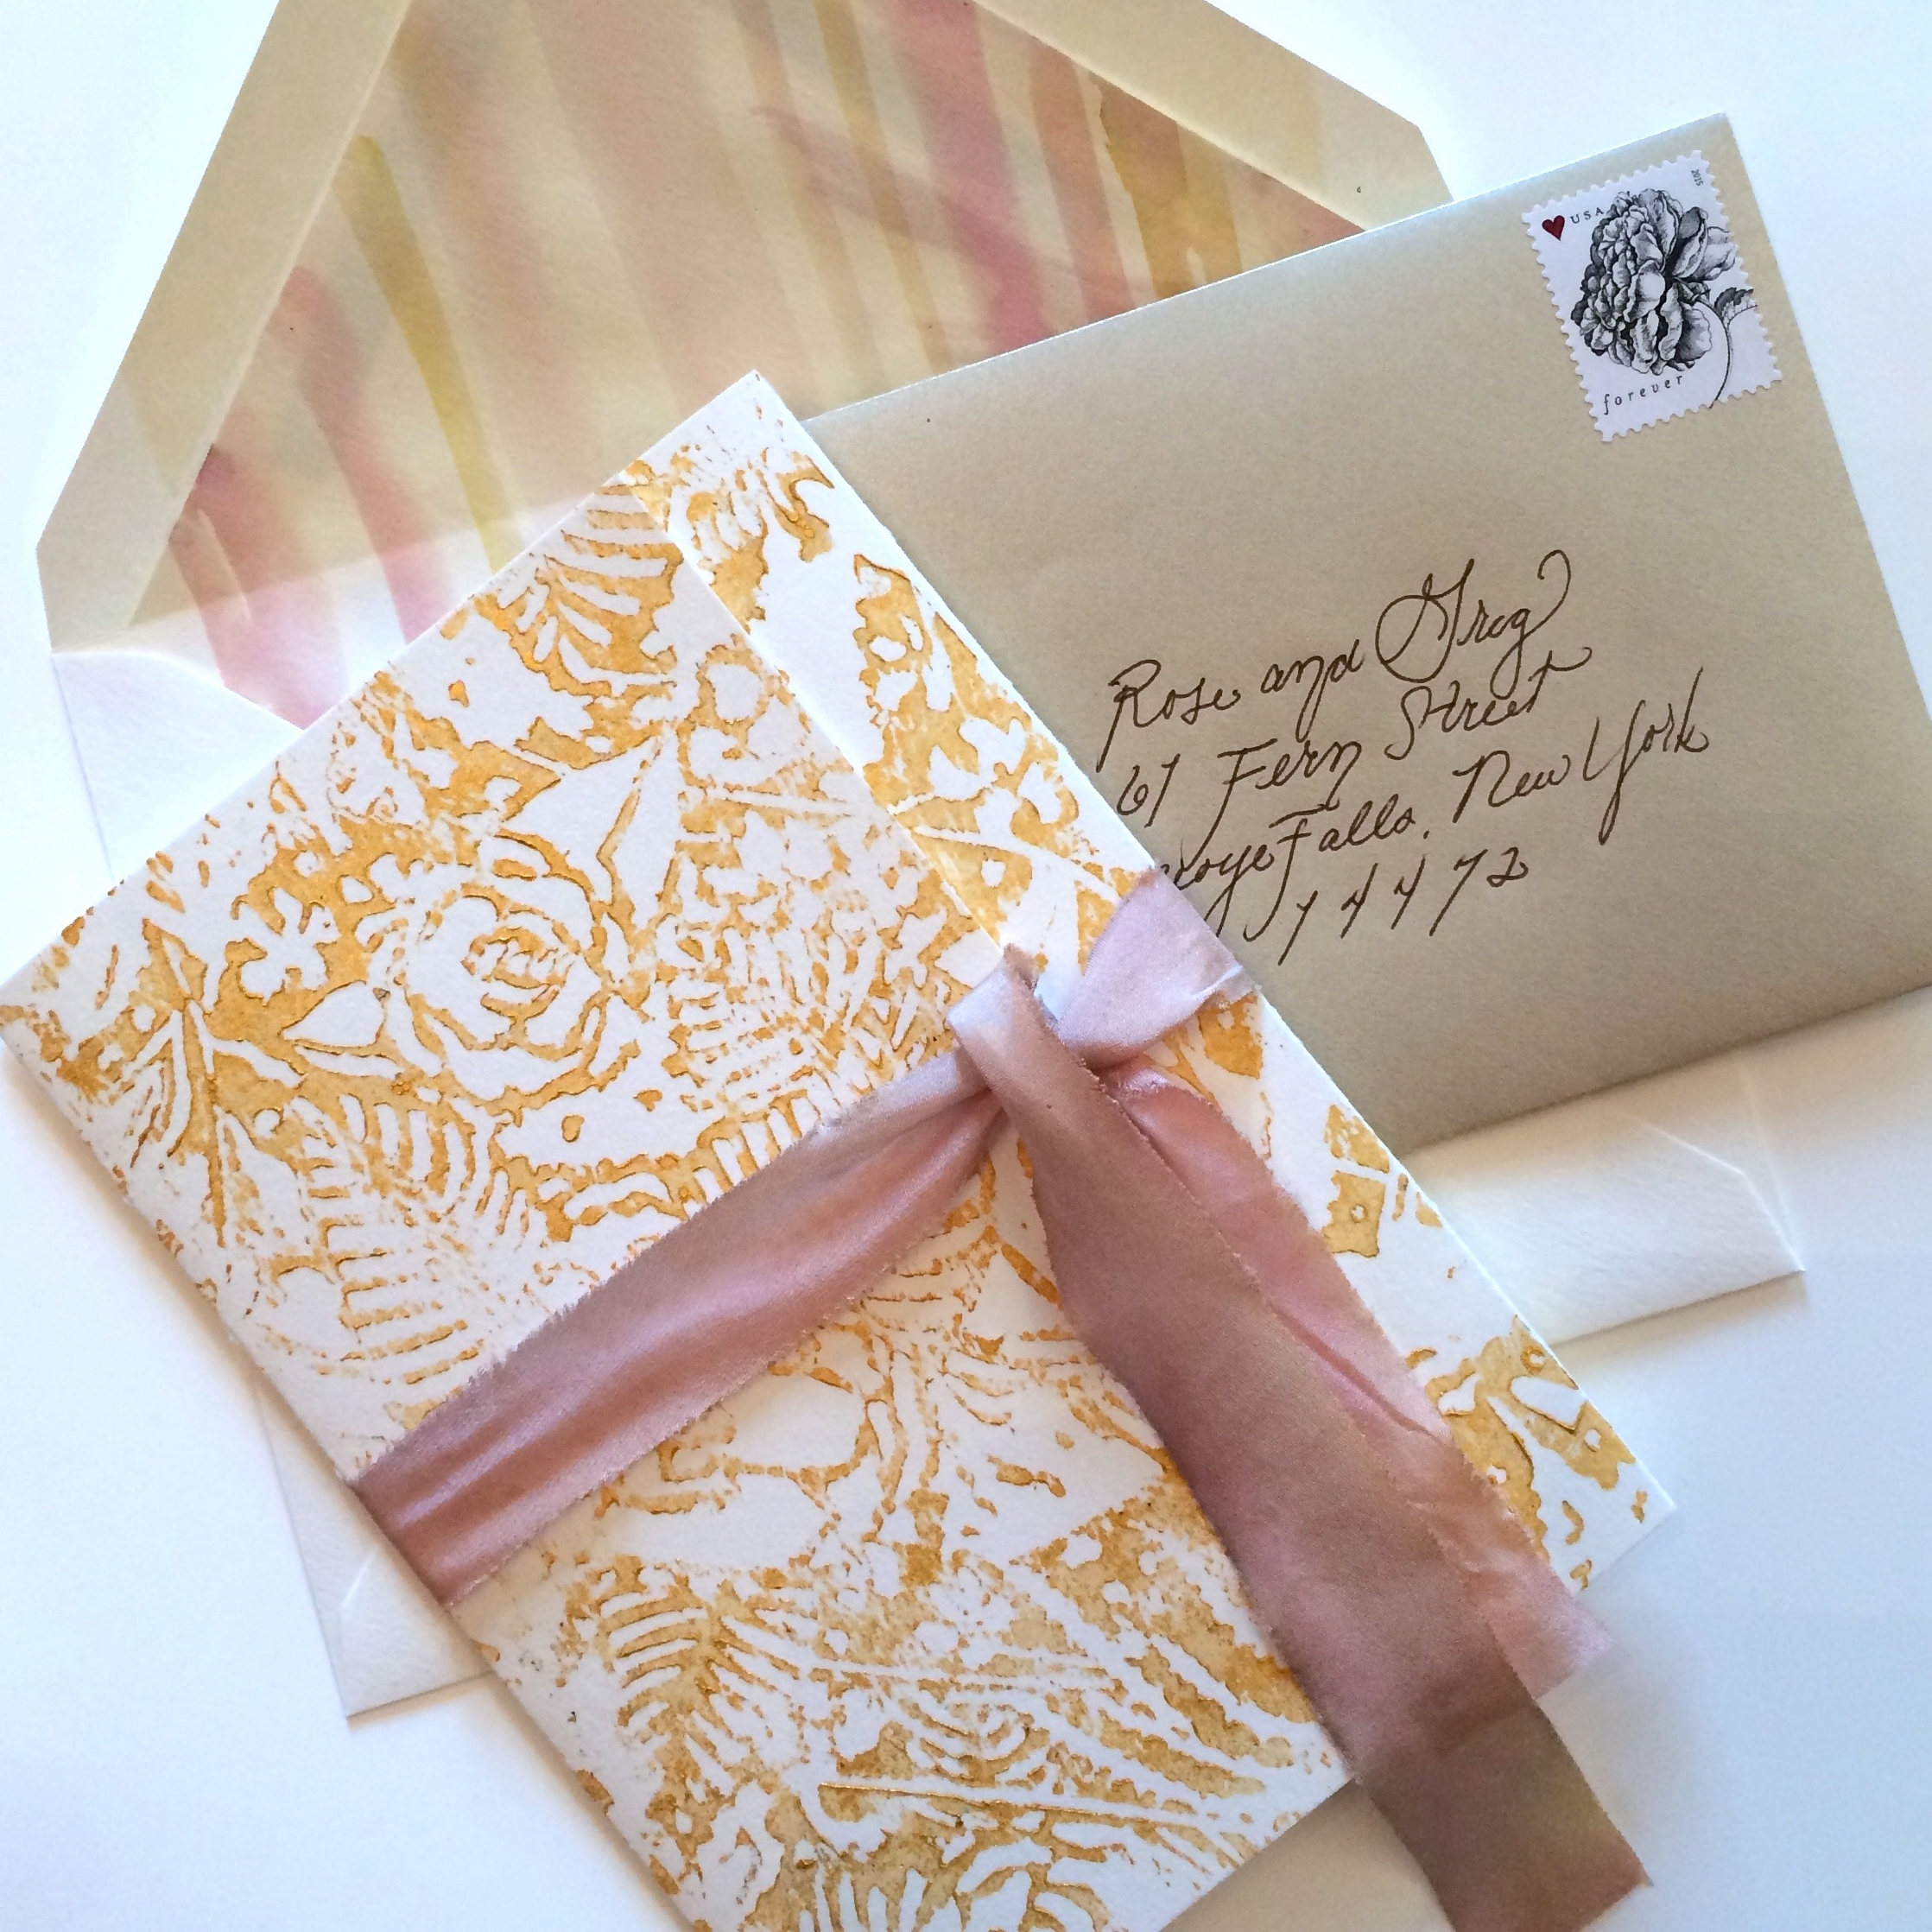 Custom Wedding Invitations - Gold Floral Block Print - Hand Dyed Silk - Louelle Design Studio Rochester New York